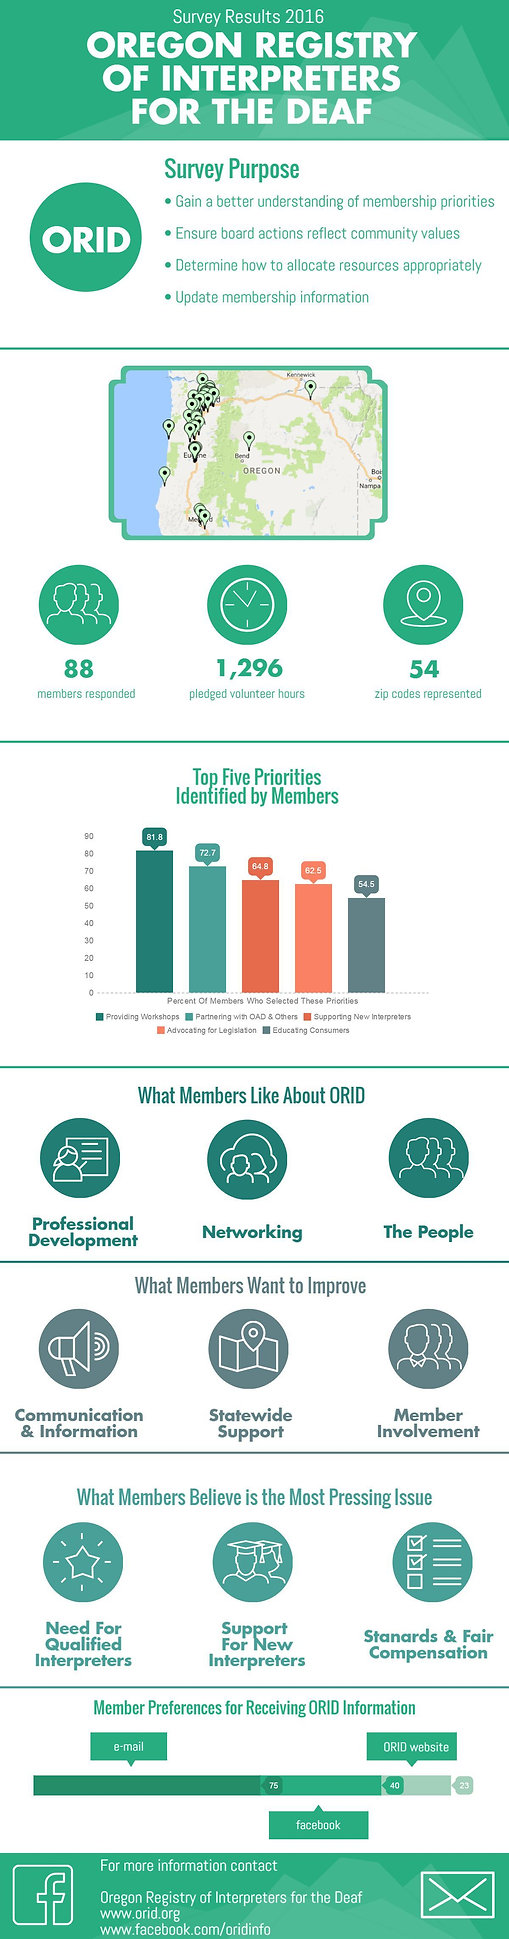 This image summarizes the results from the 2016 survey of members for ORID priorities. 88 Members responded to the survey. Membership set as the top five priorities: 1. Professional Development, 2. Organizational Partnerships, 3. New Interpreter Support, 4. Legislative Action, 5. Consumer Education. Most members (75) said they prefer communication by email, another 40 said Facebook, and 23 said they get ORID information from the website.